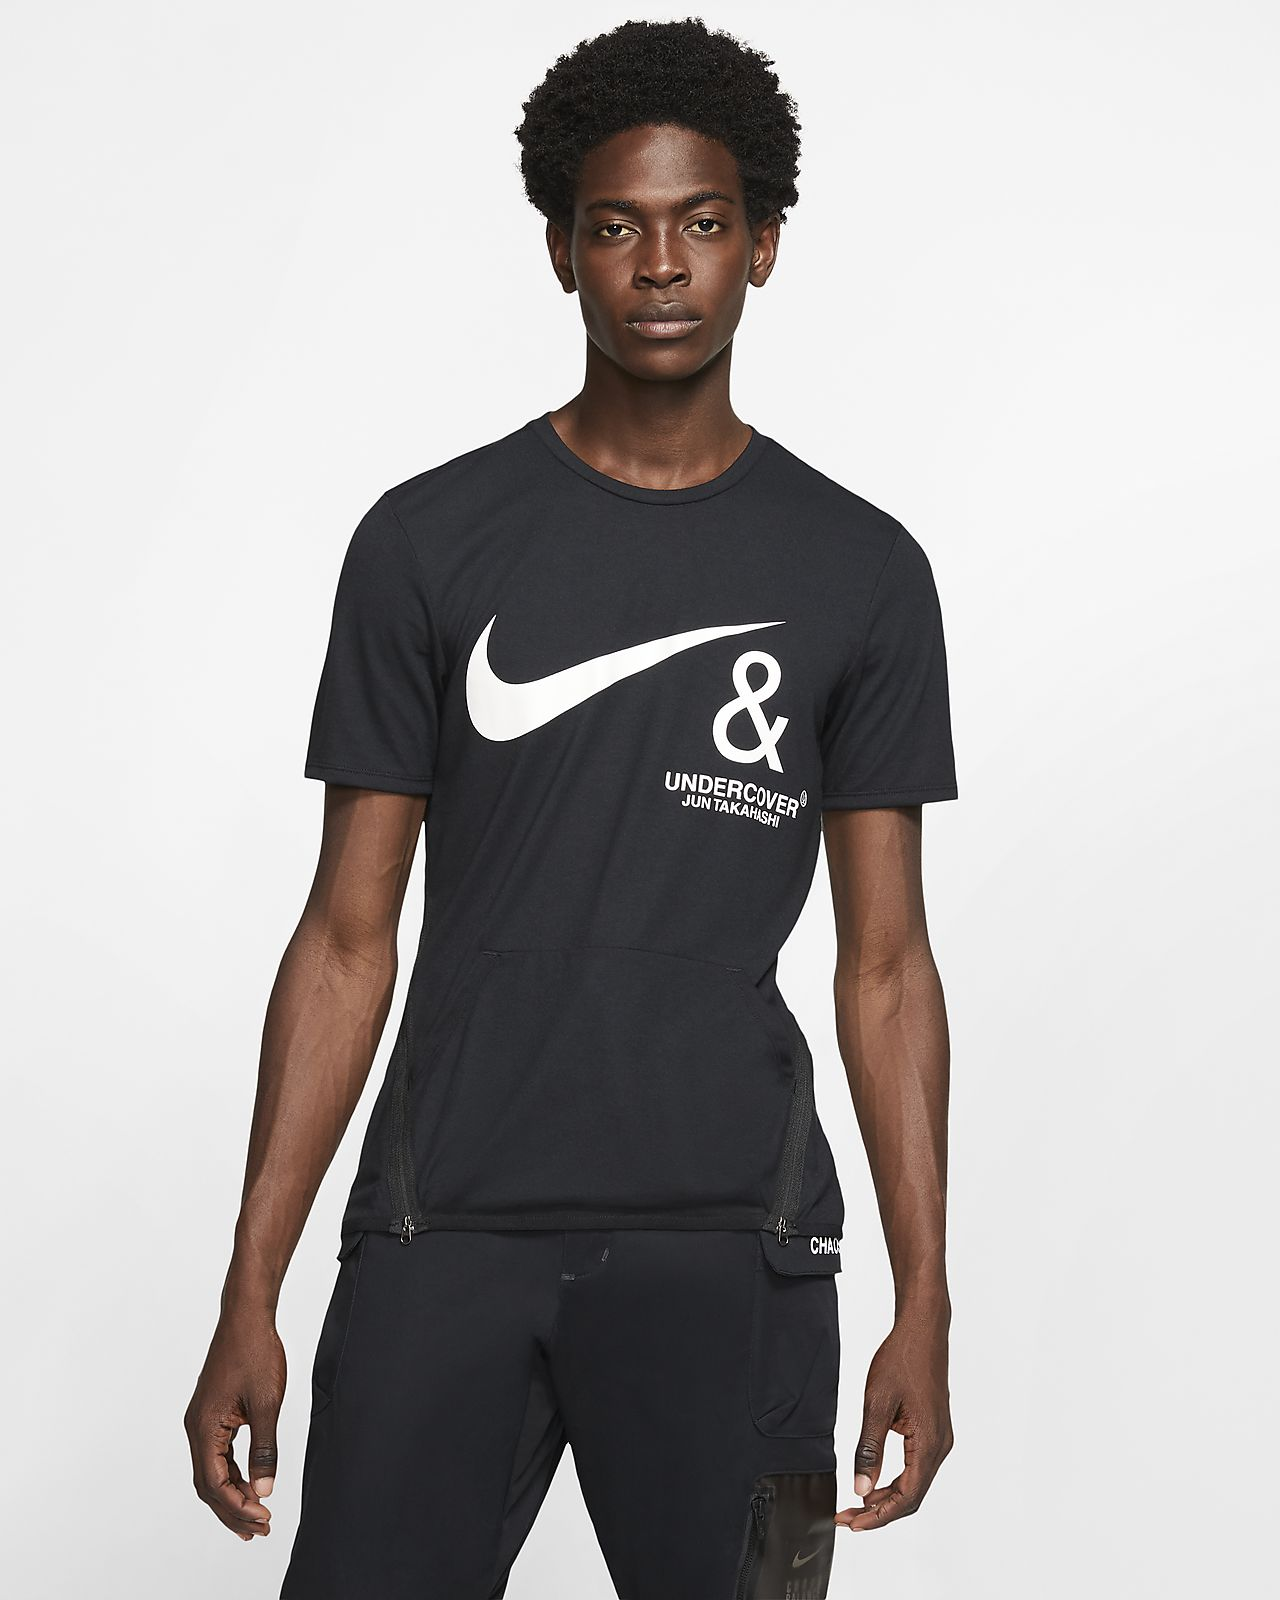 Nike x Undercover Pocket Top